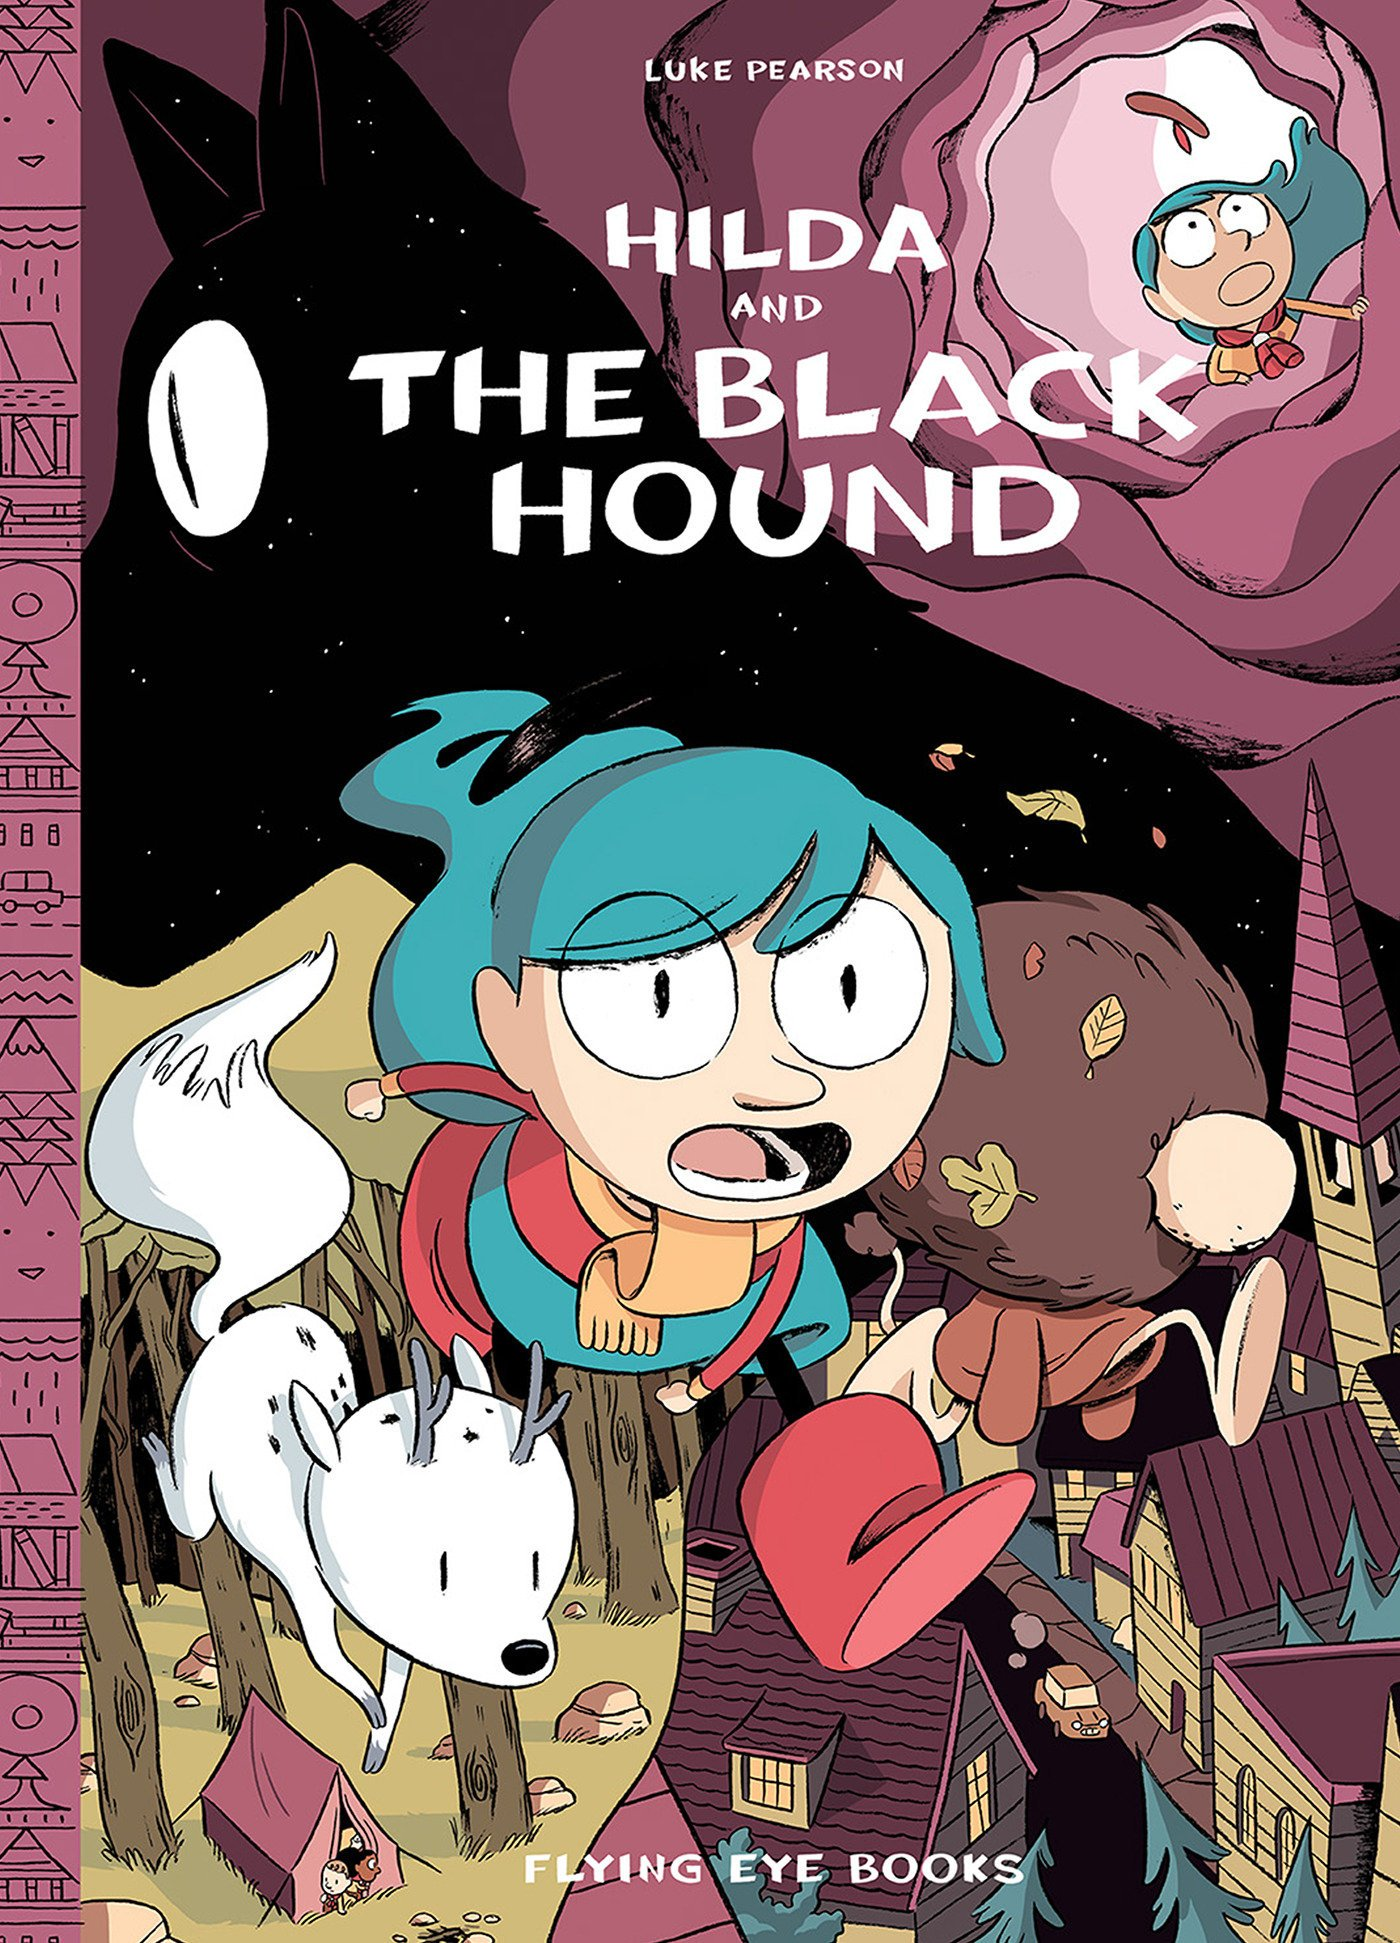 The 100 Best Comics of the Decade: Hilda & The Black Hound